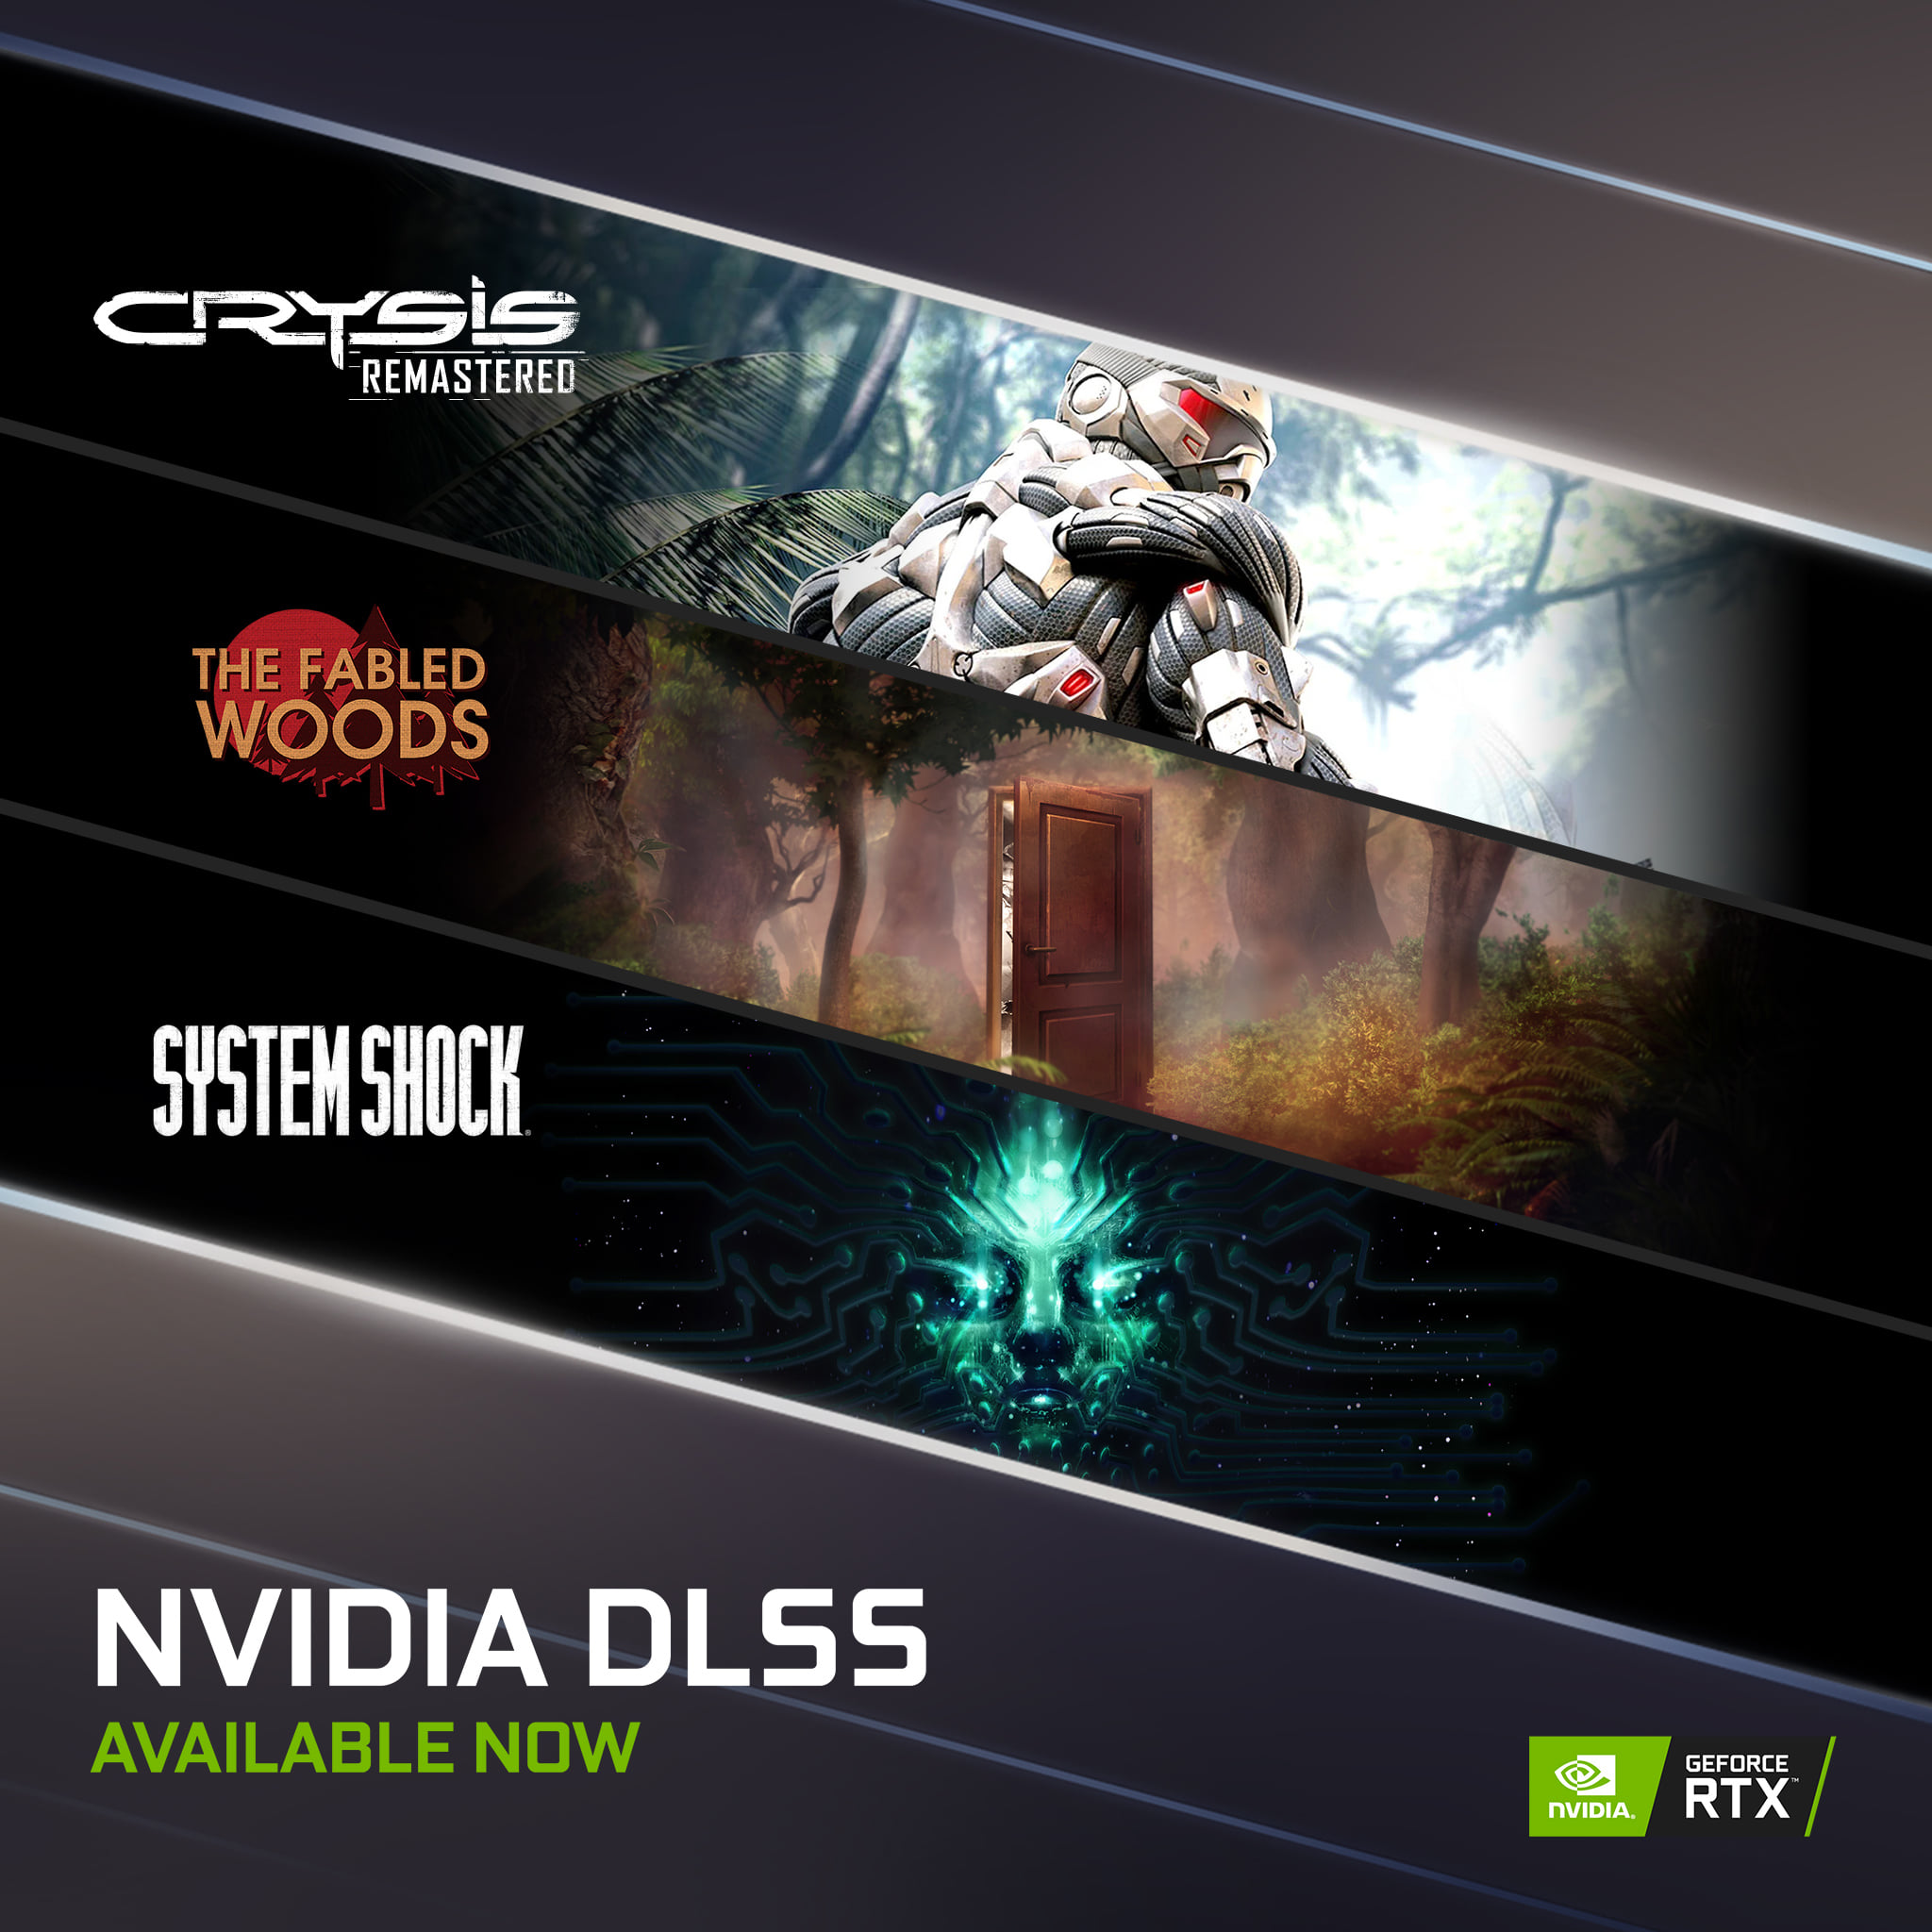 NVIDIA DLSS is coming to more of your favorite games for maximum performance!  #RTXOn  ⚡ Crysis Remastered